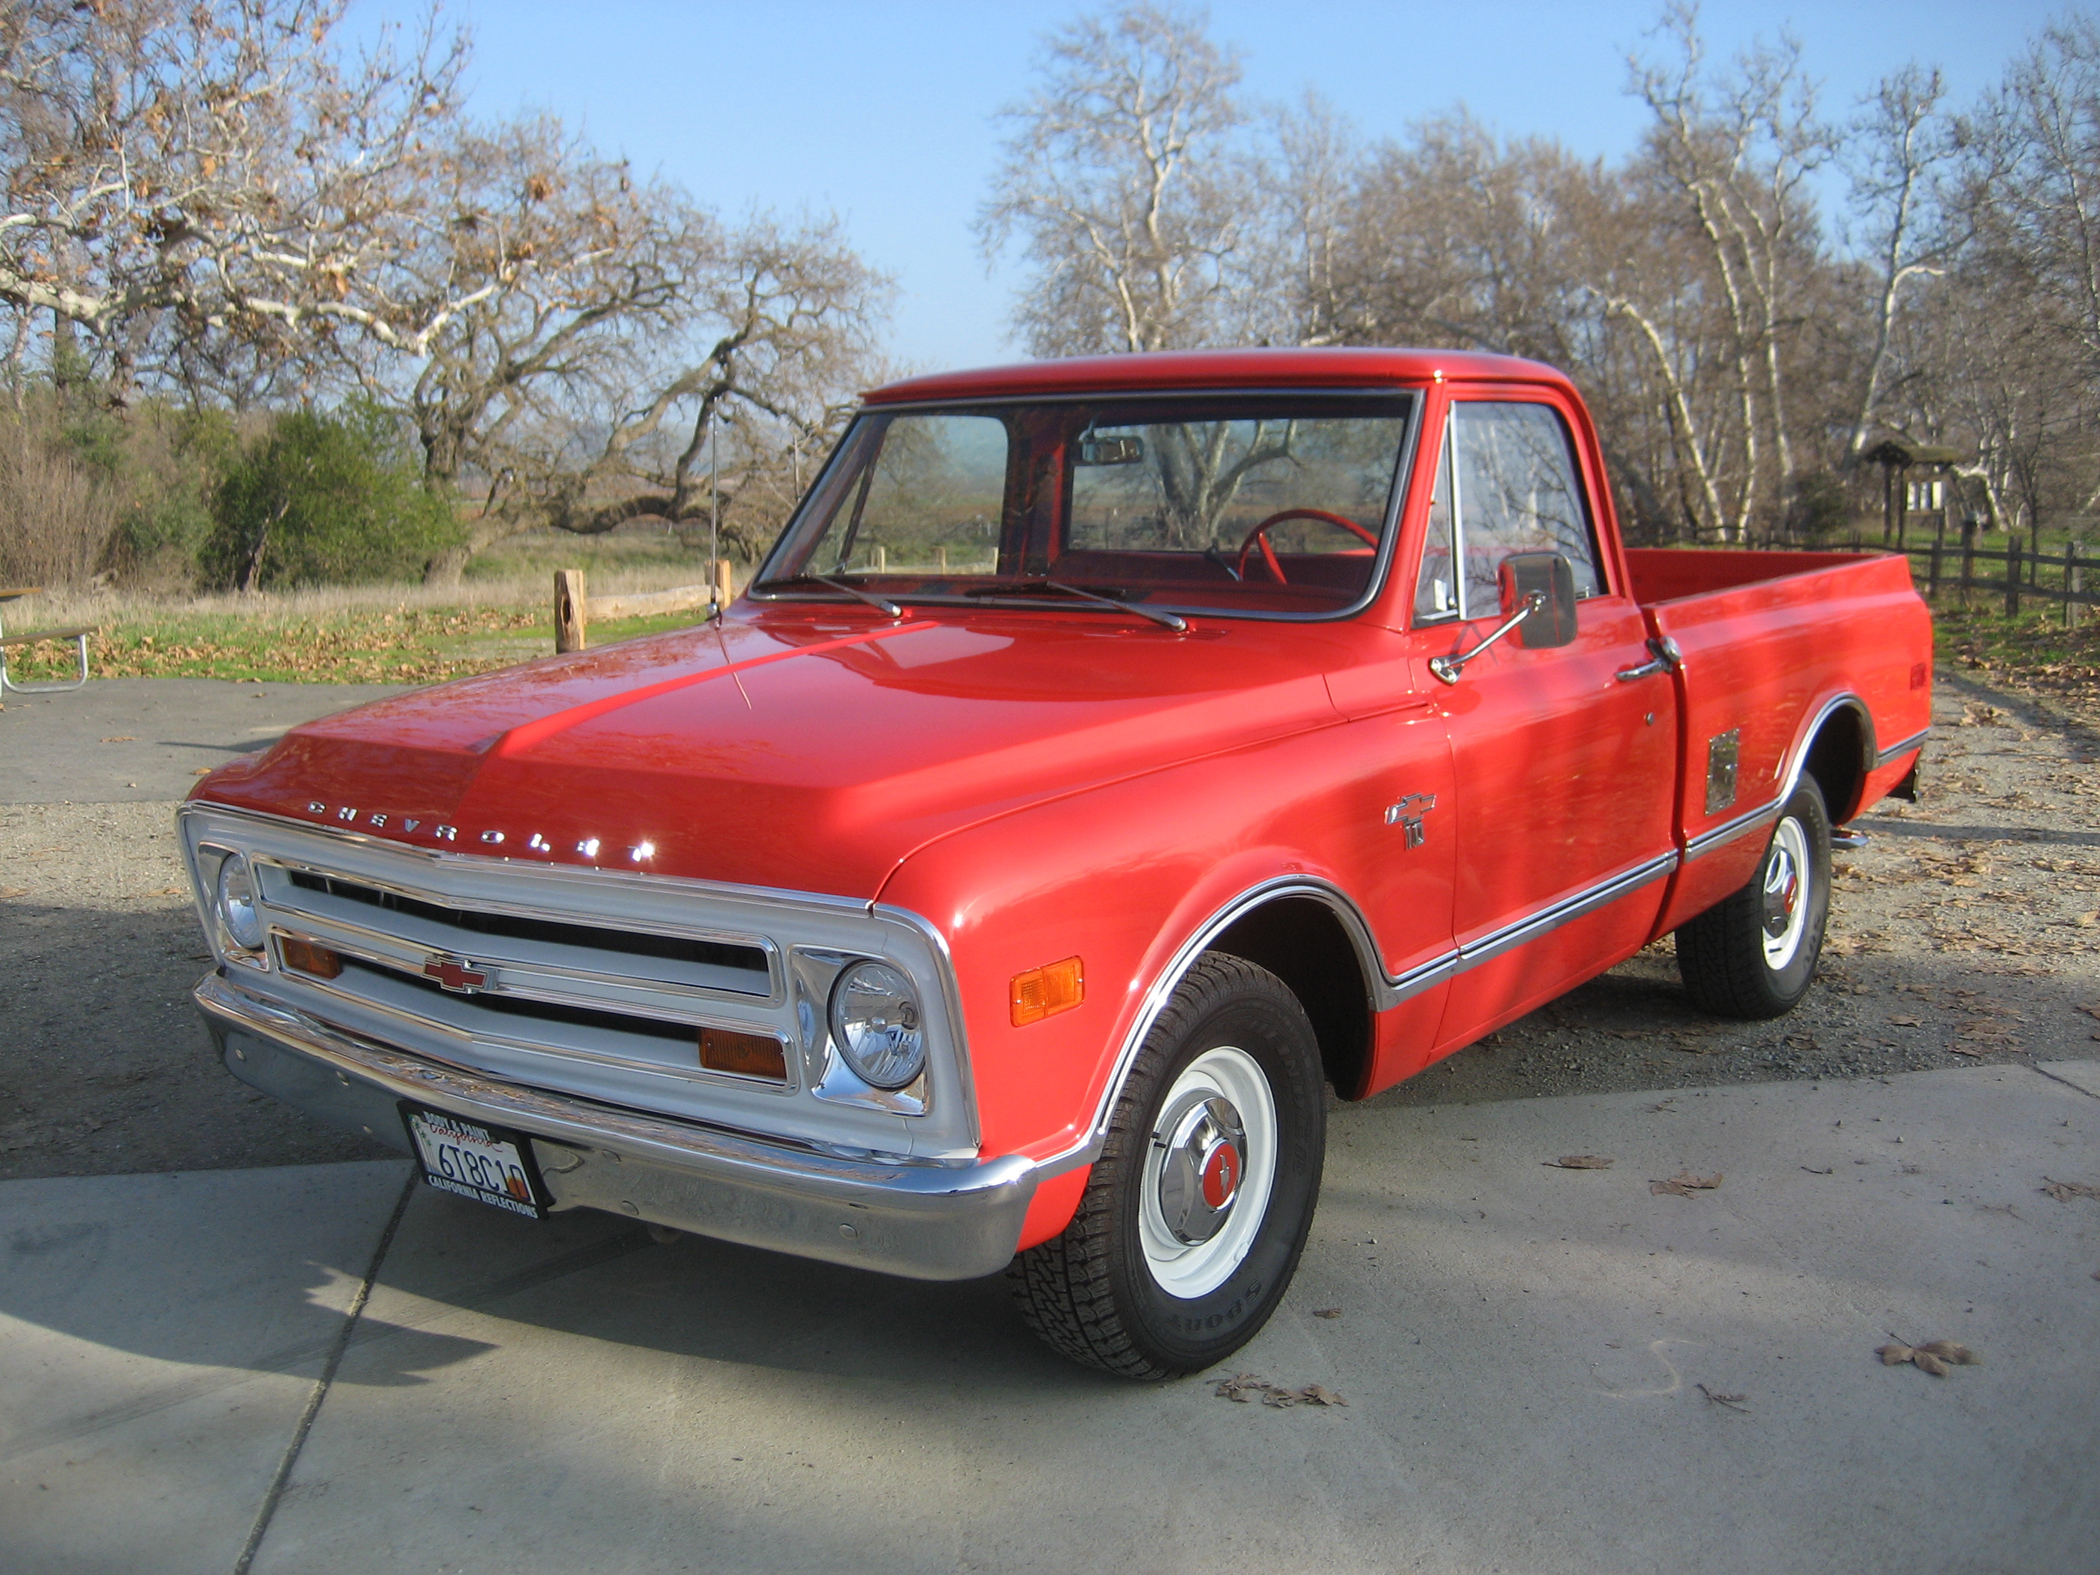 1968 Chevy Pickup Truck Has Remained In The Family - Clic ...